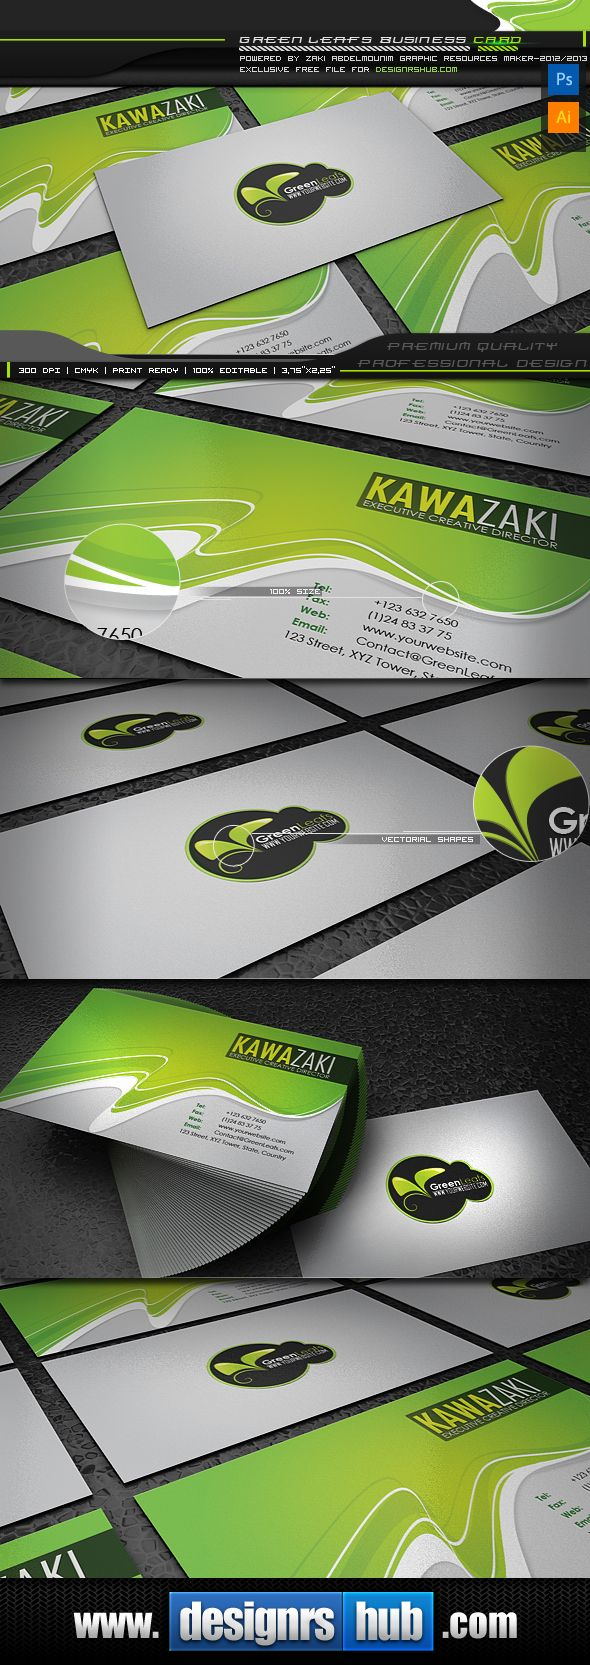 Green leaf free green business card template designrshub gallery today designrshub and zaki are really proud to present another exclusive freebie entitled green leaf a free green business card template psd and eps reheart Gallery